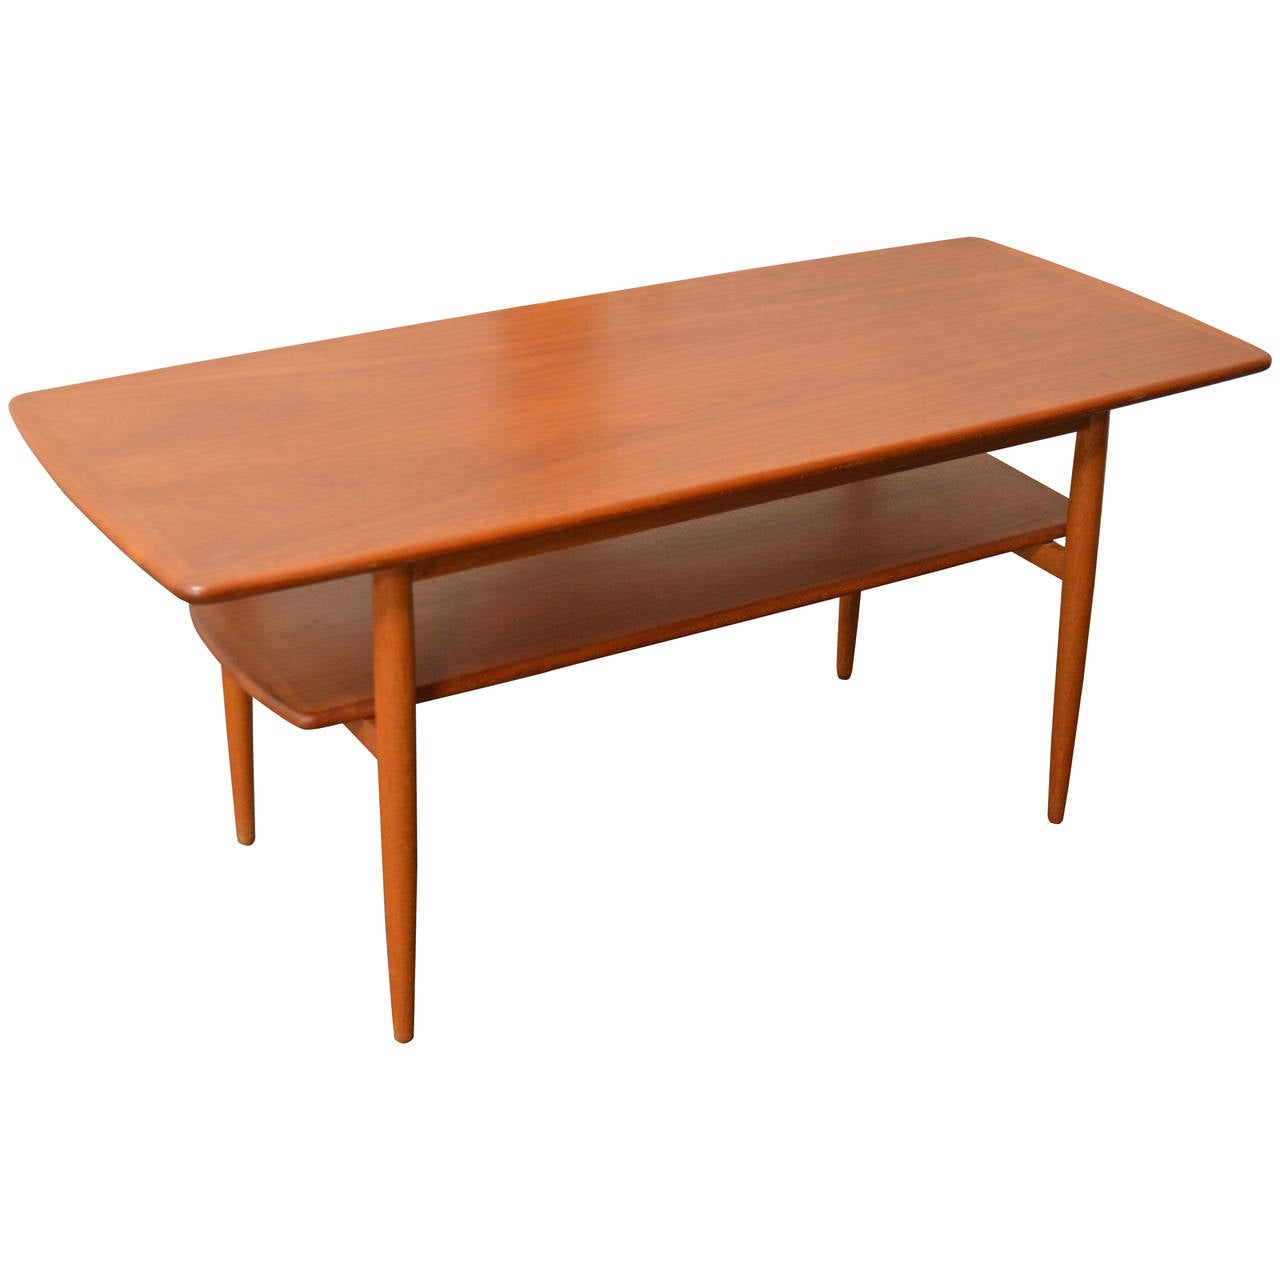 mid century modern swedish teak coffee table with shelf for sale at 1stdibs. Black Bedroom Furniture Sets. Home Design Ideas